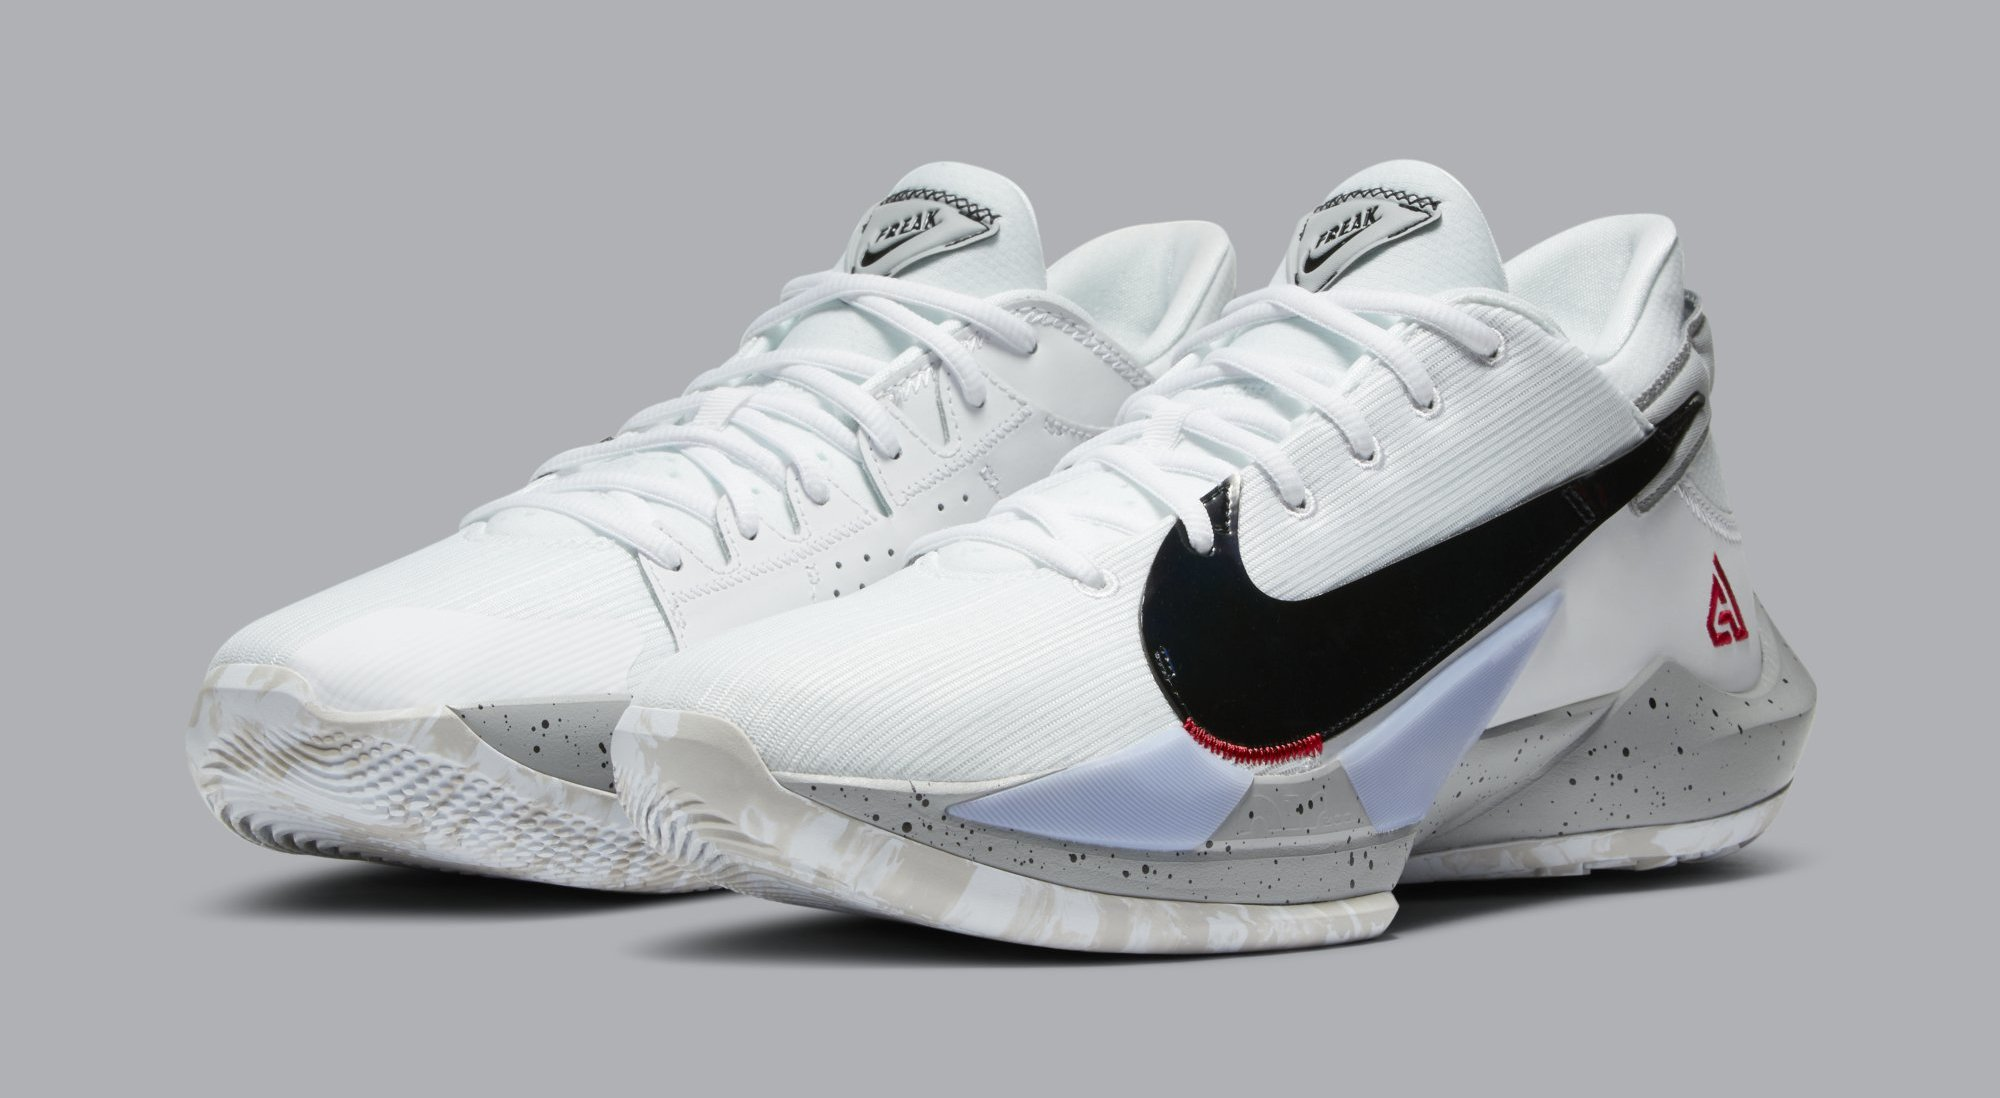 Nike Zoom Freak 2 White Cement Release Date Ck5825 100 Sole Collector